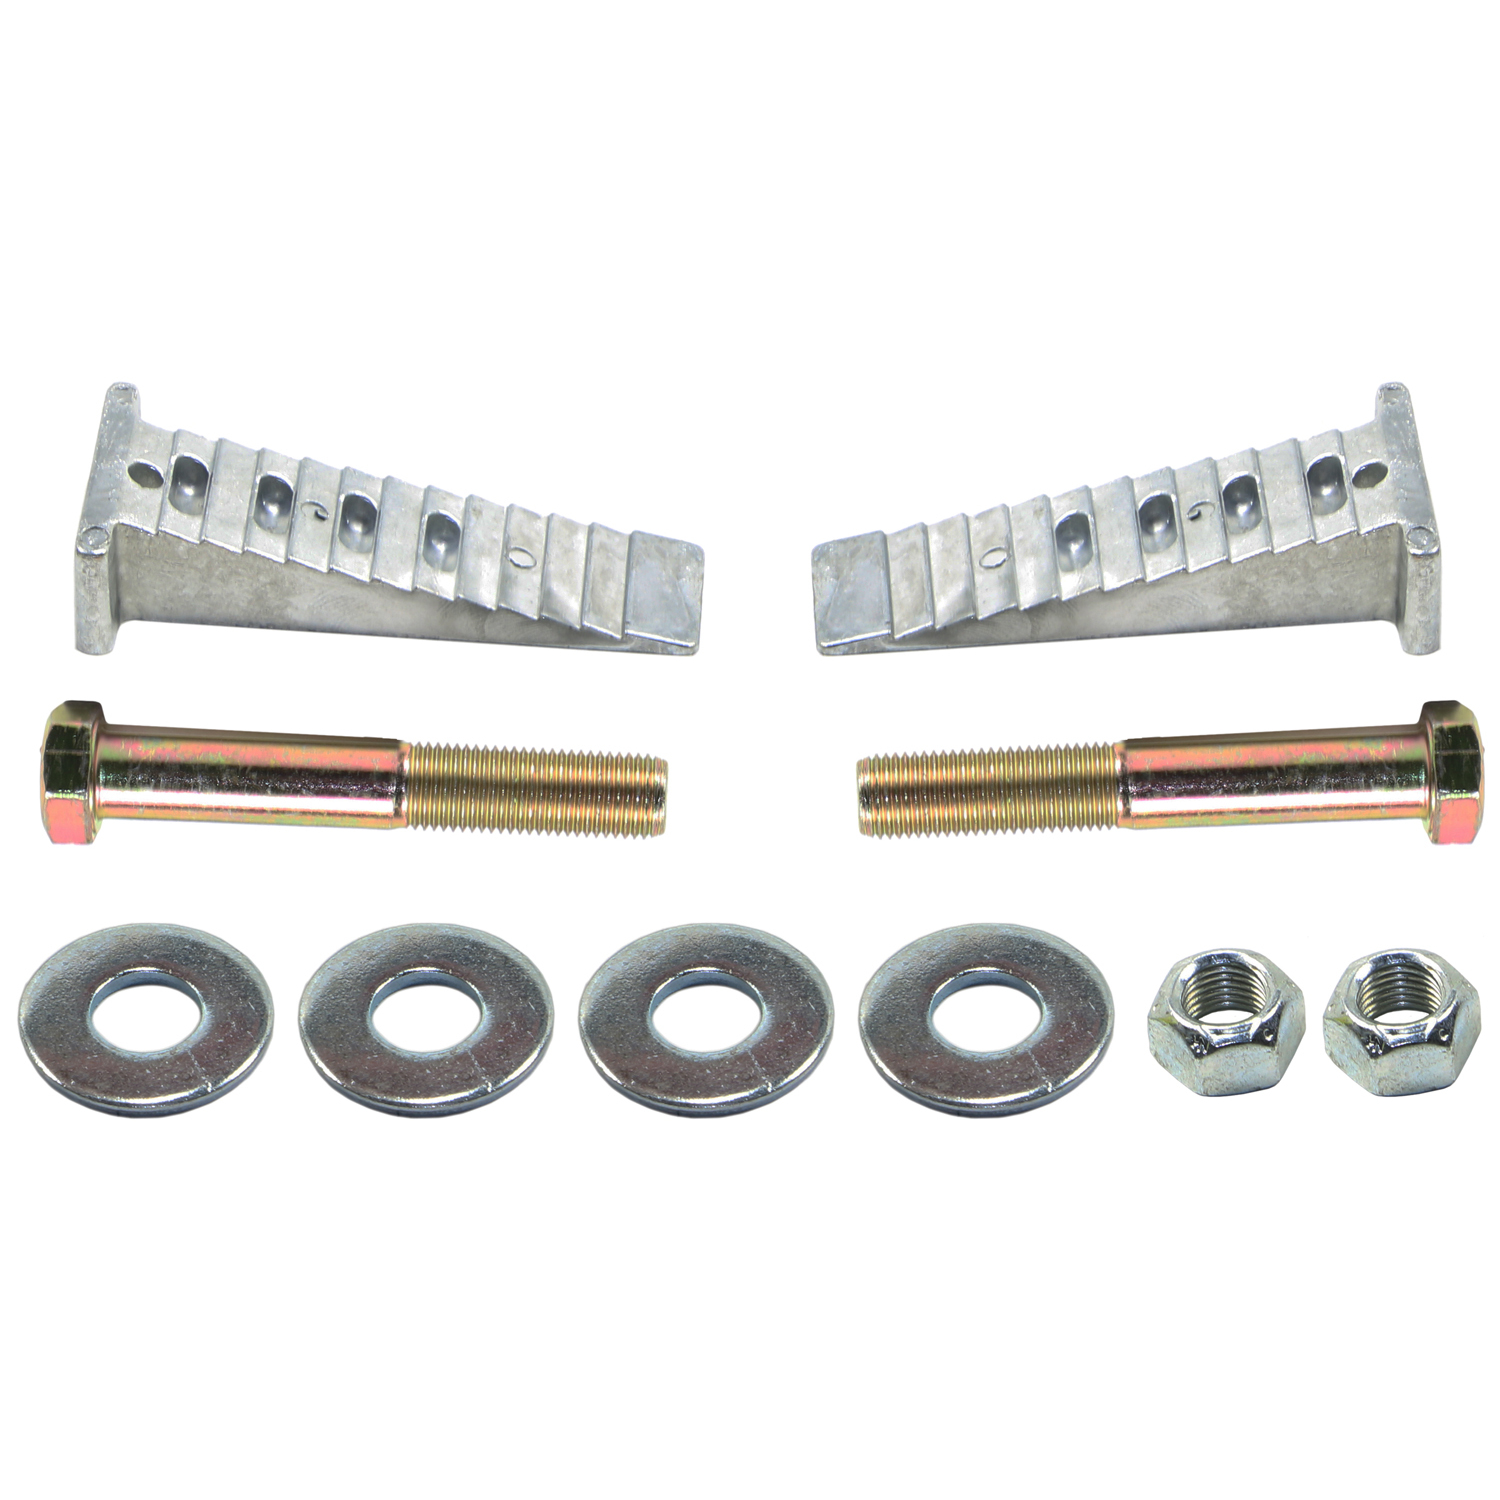 Alignment Camber Wedge Kit